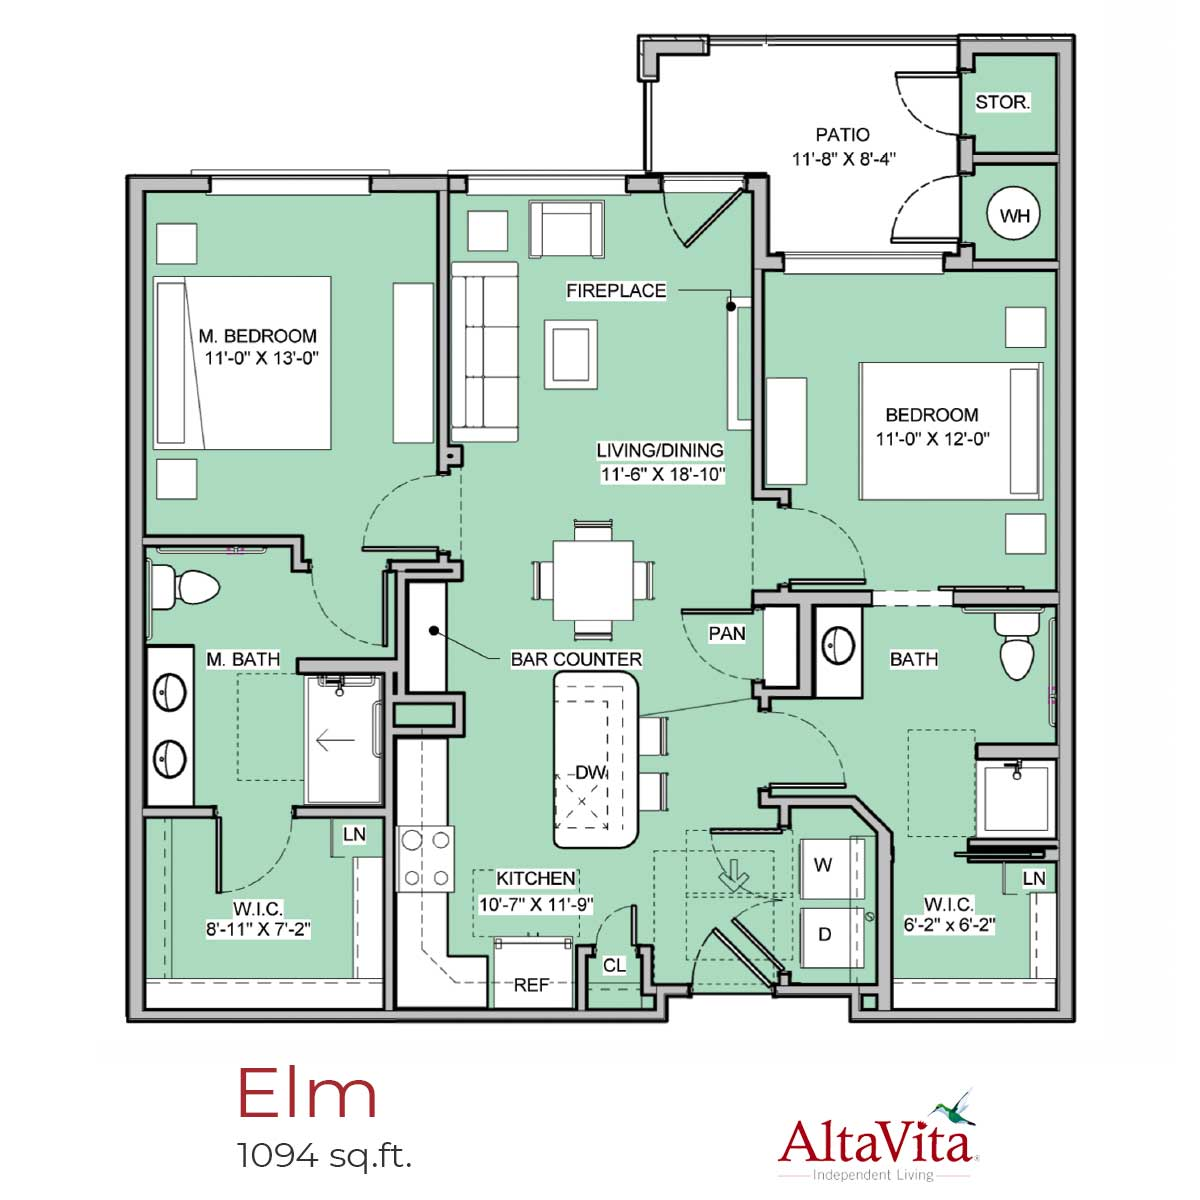 Elm - AltaVita Independent Living Floor Plans in Longmont, CO